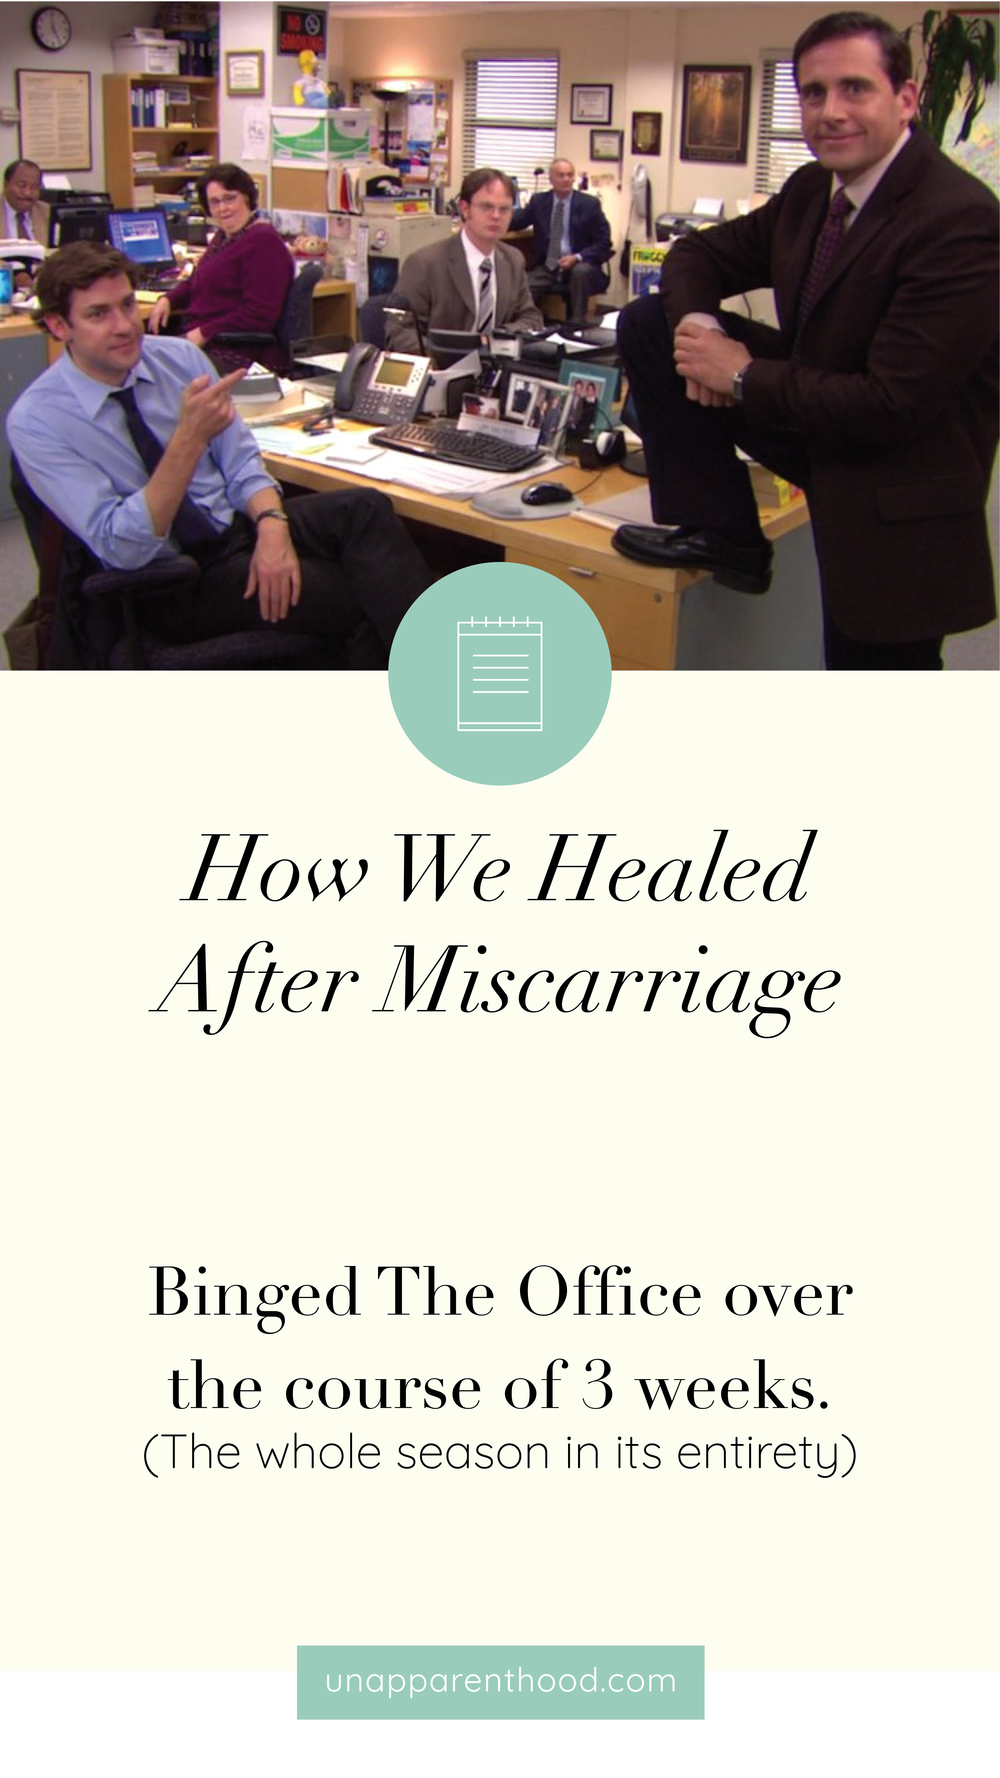 the office_miscarriage-05.png